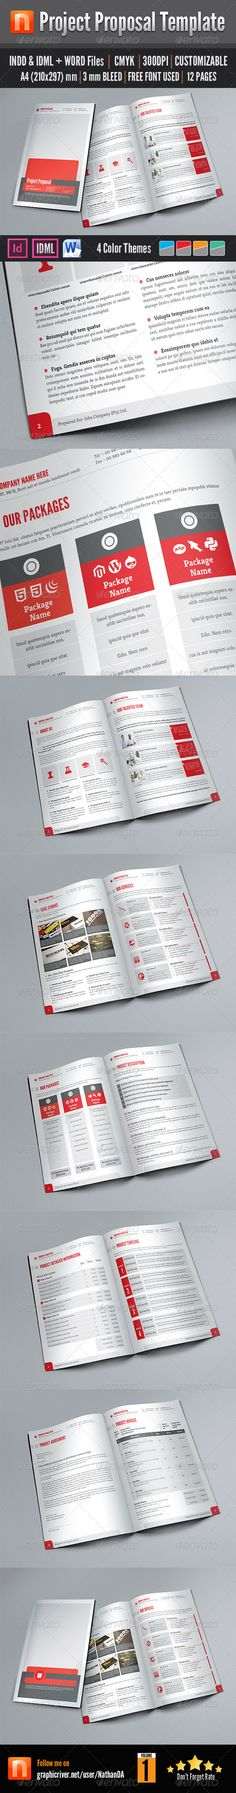 Proposal Template Proposal templates, Proposals and Business - project proposal template free